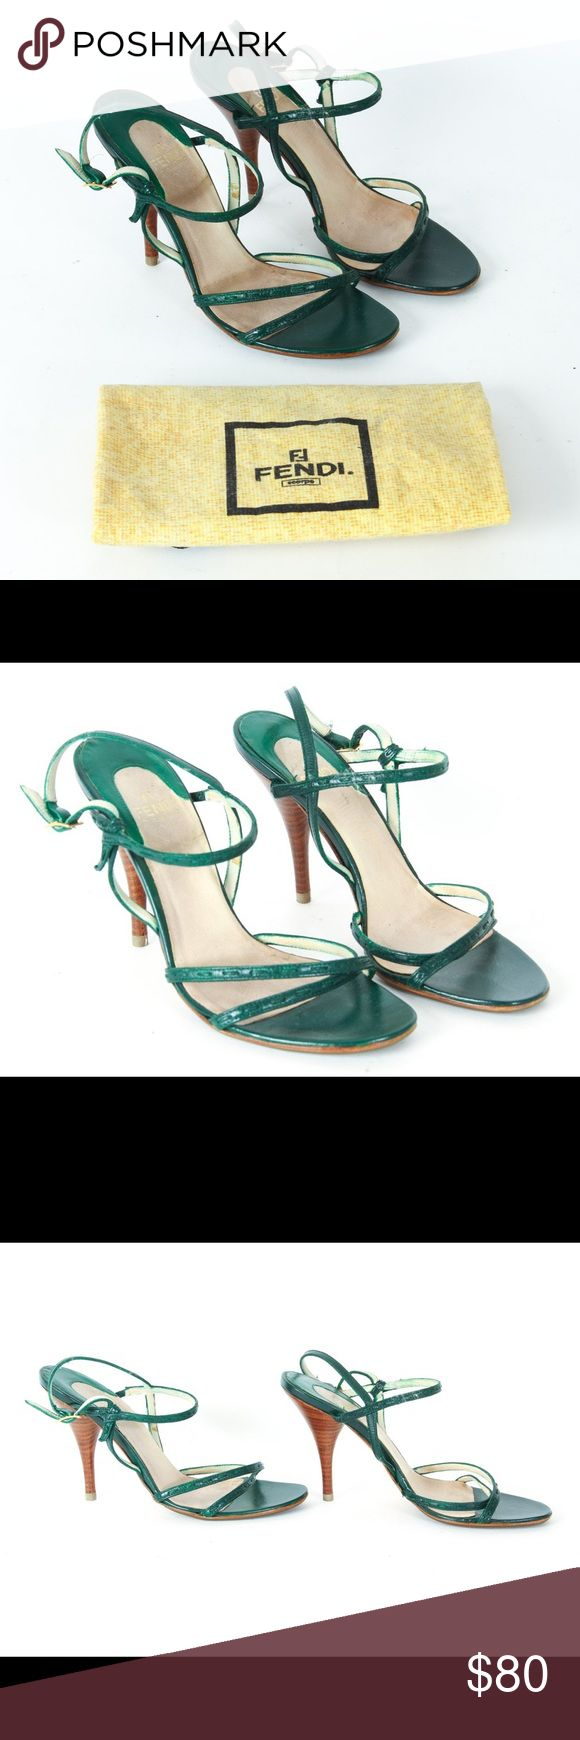 """AUTHENTIC FENDI green strappy heels AUTHENTIC FENDI green strappy heels. ~4"""" heels, made in Italy. Sexy dark green straps, adjustable at the ankle. New protective soles and heels put in. Pre-loved condition, signs of wear on insoles and discoloration on the inside of the straps, but still has lots of love left to give! Very sexy and seductive shoes! Comes with original FENDI dust bag. Europe size 37 = US size 7. Open to reasonable offers of bundle 2 for 15% off! Fendi Shoes Sandals"""